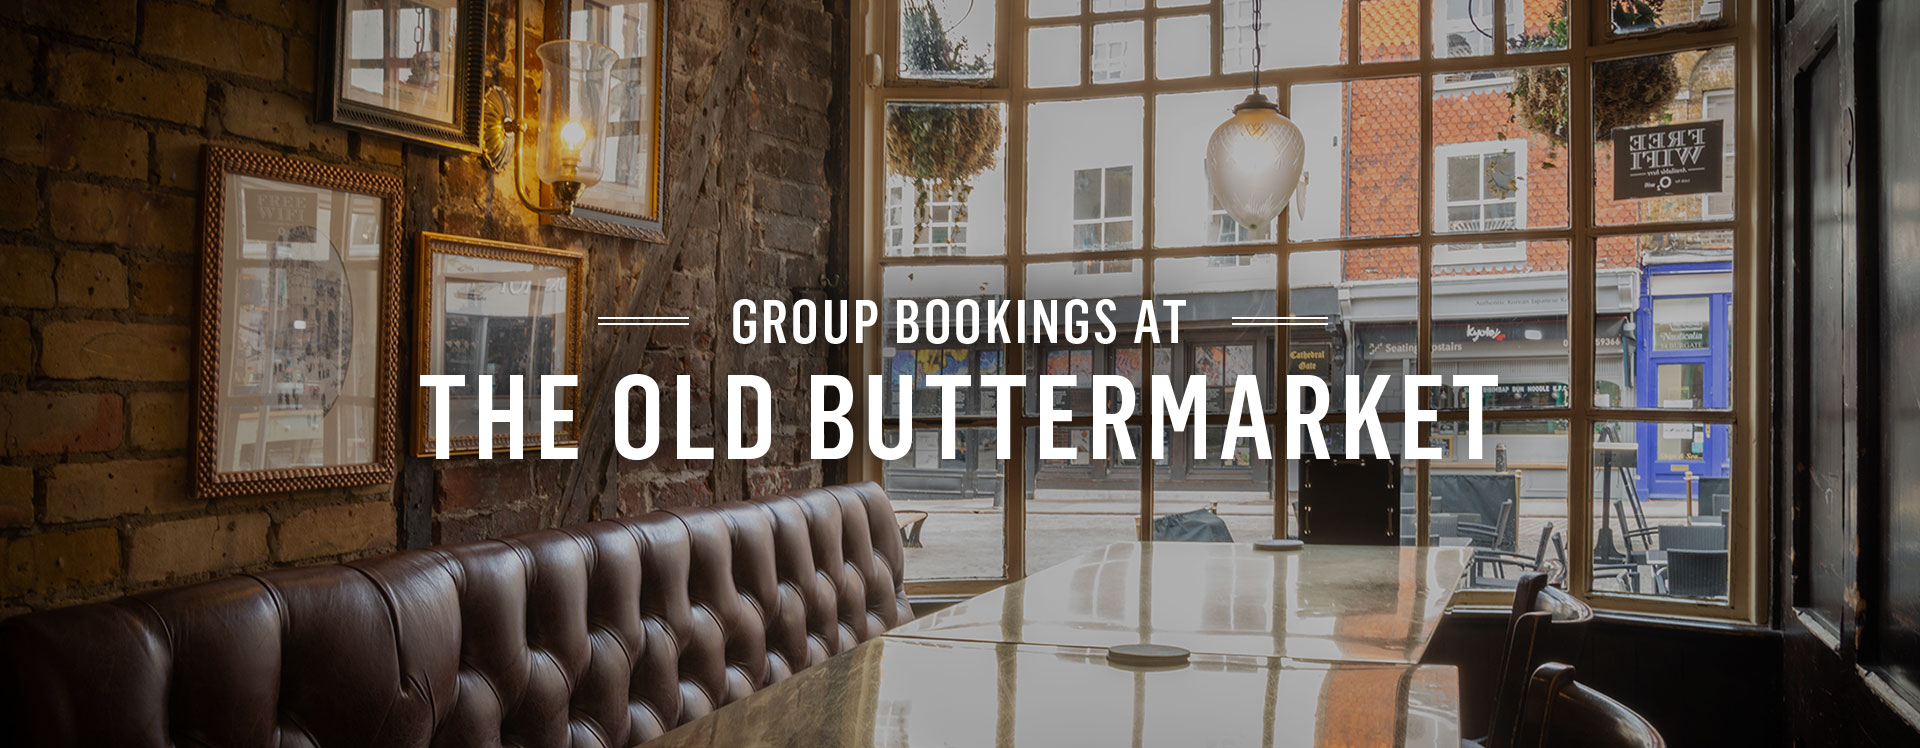 Group Bookings at The Old Buttermarket